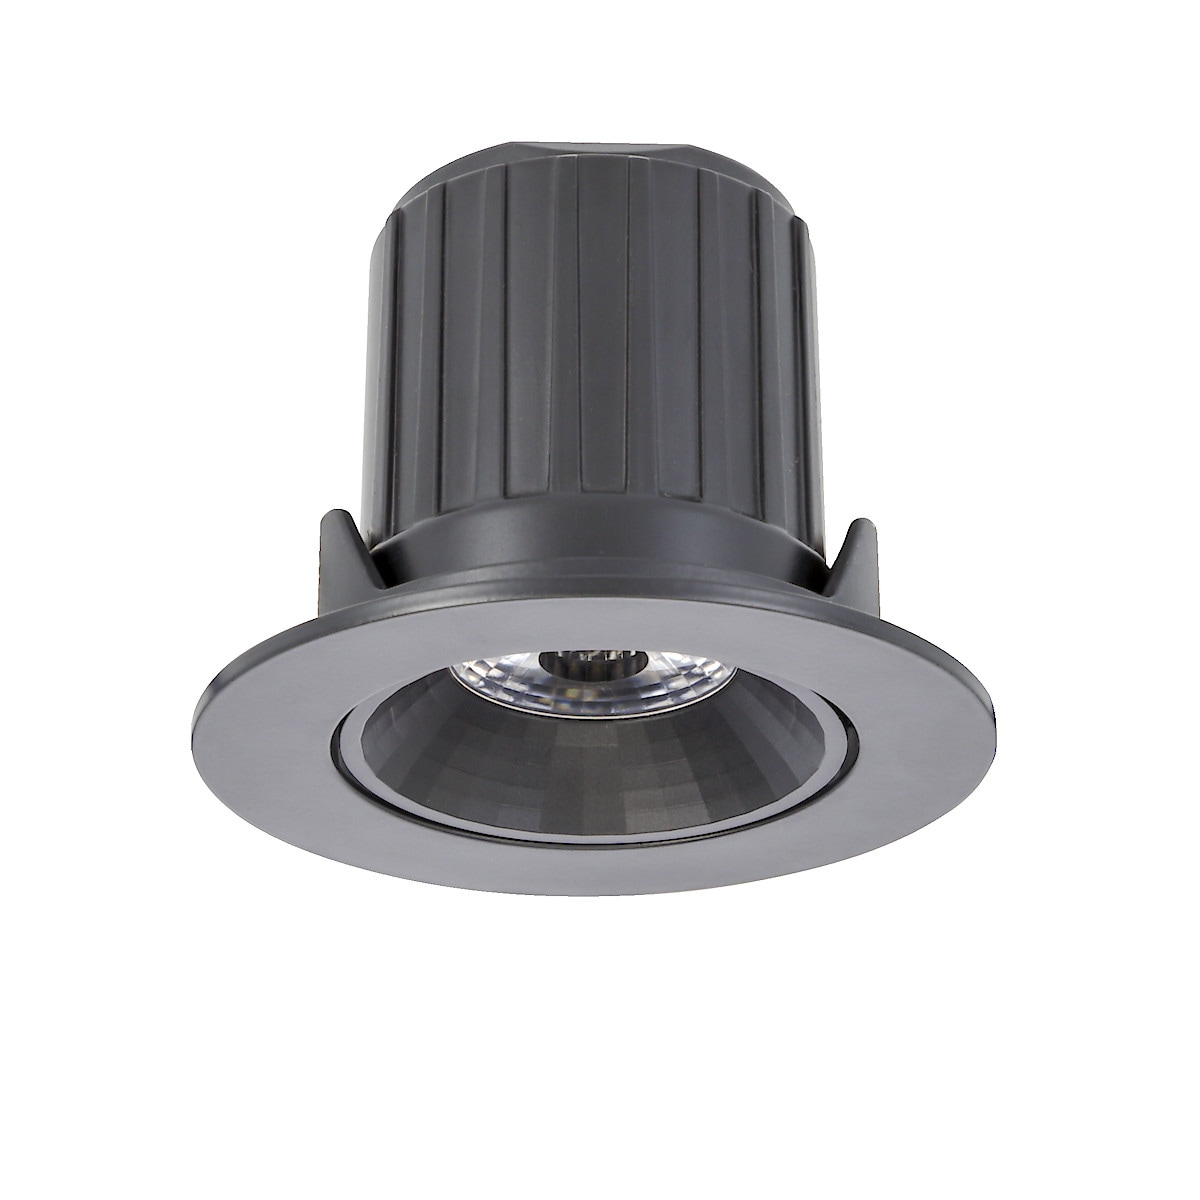 Dimbar downlight LED 230 V